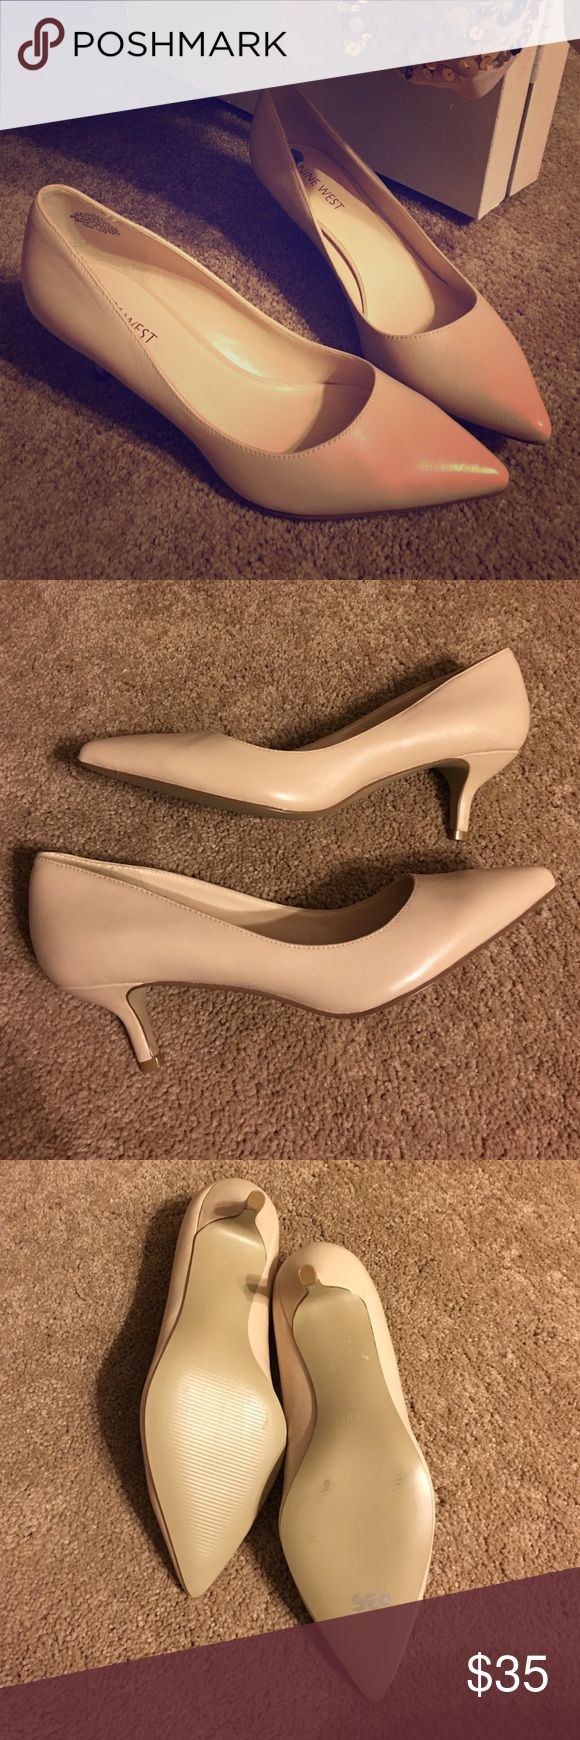 NWOT Nine West Pumps New without tags Nine West short heel pumps. Never worn only tried on. They are a tad too small for me. Nine West Shoes Heels